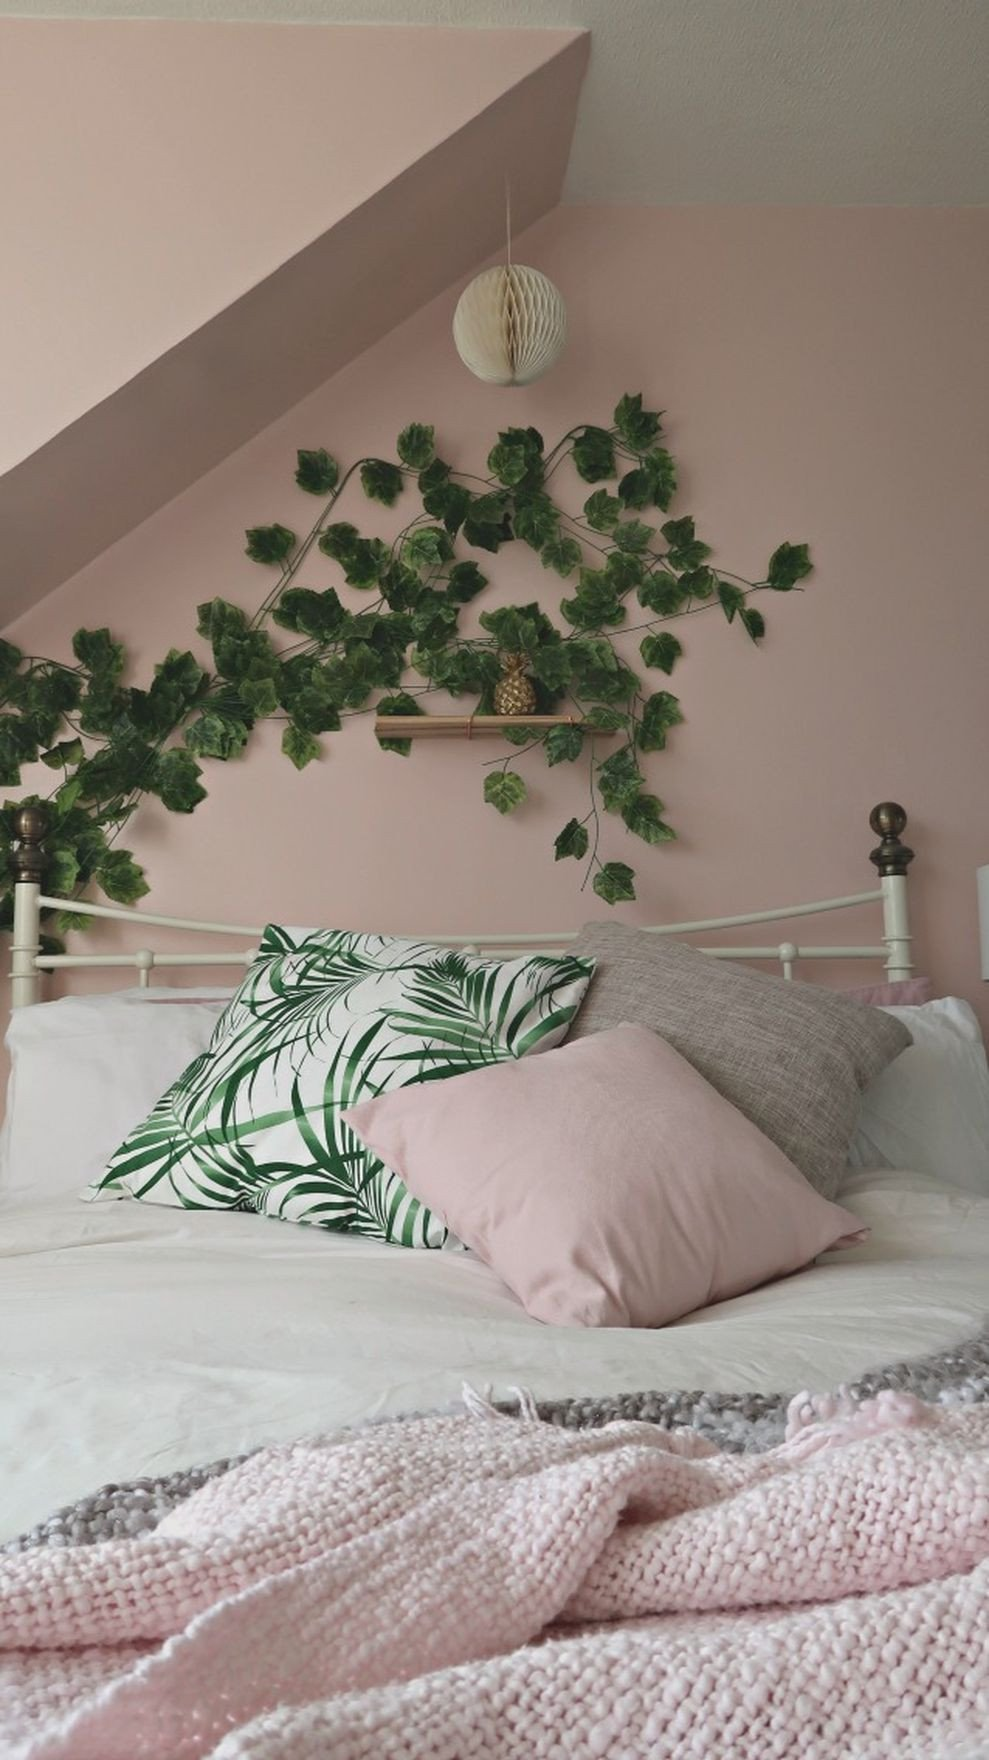 Pink and White Bedroom Awesome 86 Cute Bedroom Design Ideas with Pink and Green Walls